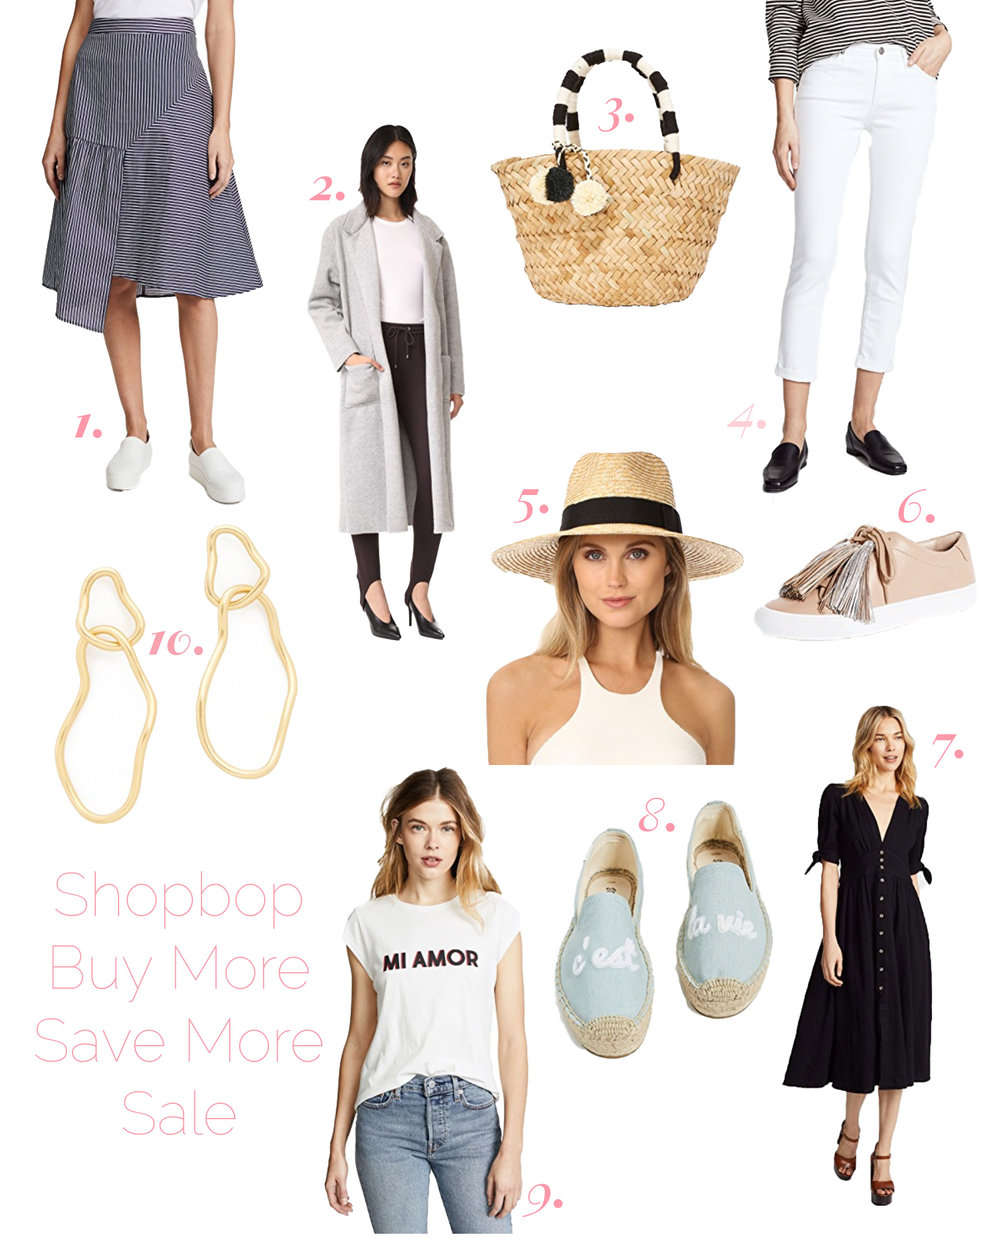 Shopbop Buy More Save More Sale.jpg